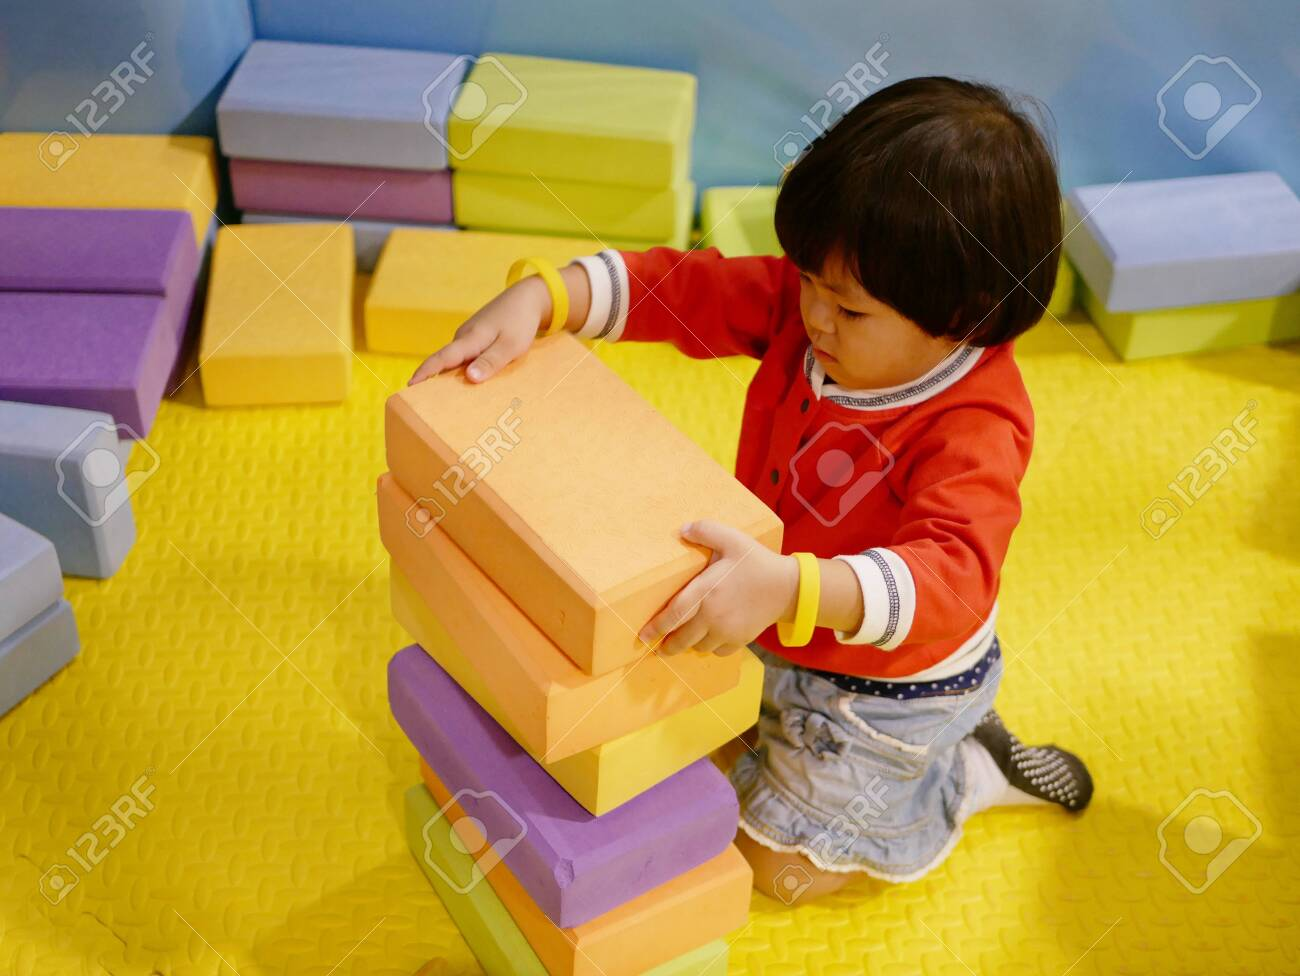 Little Asian baby girl stacking up foam building bricks / blocks at an indoor playground - playing foam blocks helps develop children's fine motor and logical thinking skills - 125869795